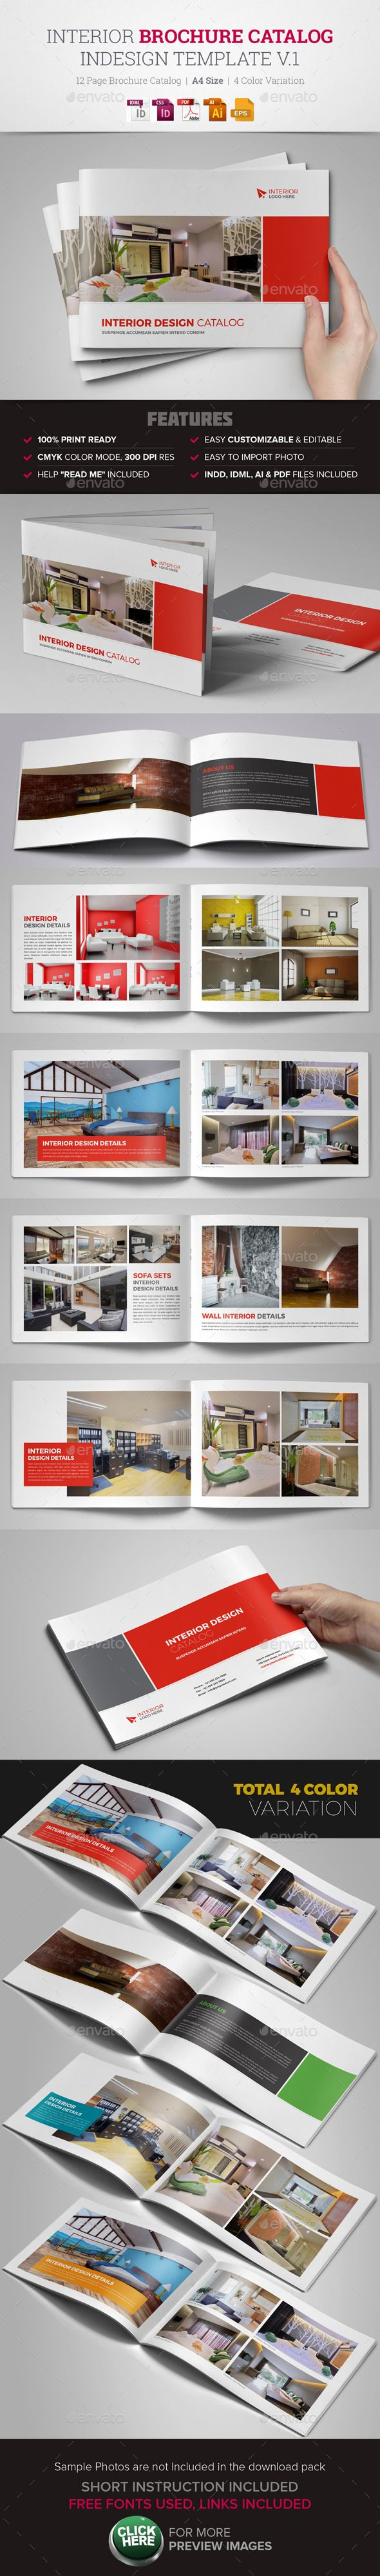 Interior Brochure Catalog InDesign Template Design Download Graphicriver